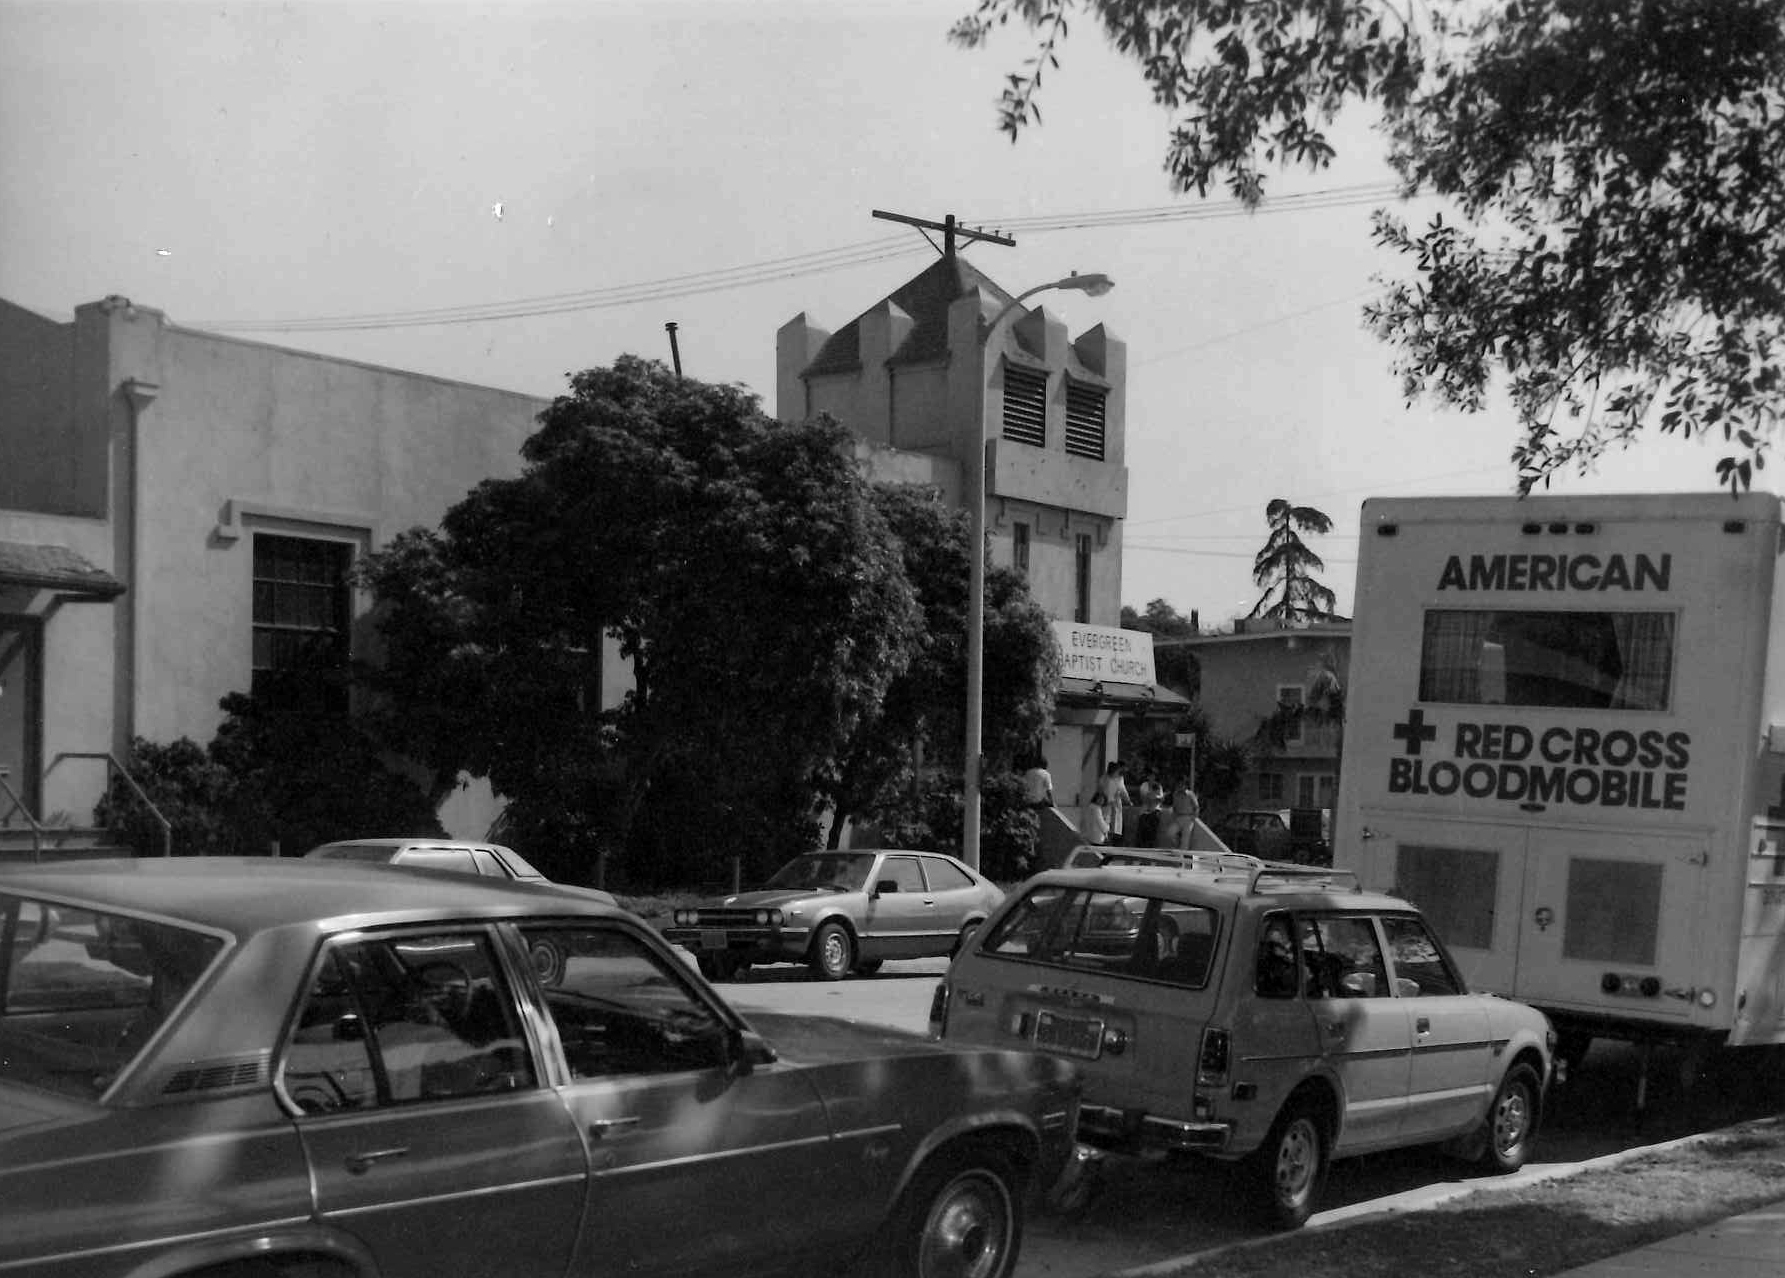 Our History - Evergreen began in East Los Angeles in 1925. The Lord moved us in 1987 to the City of Rosemead. In 1997, Evergreen SGV was born from the vision that God gave the leadership to start a new work.